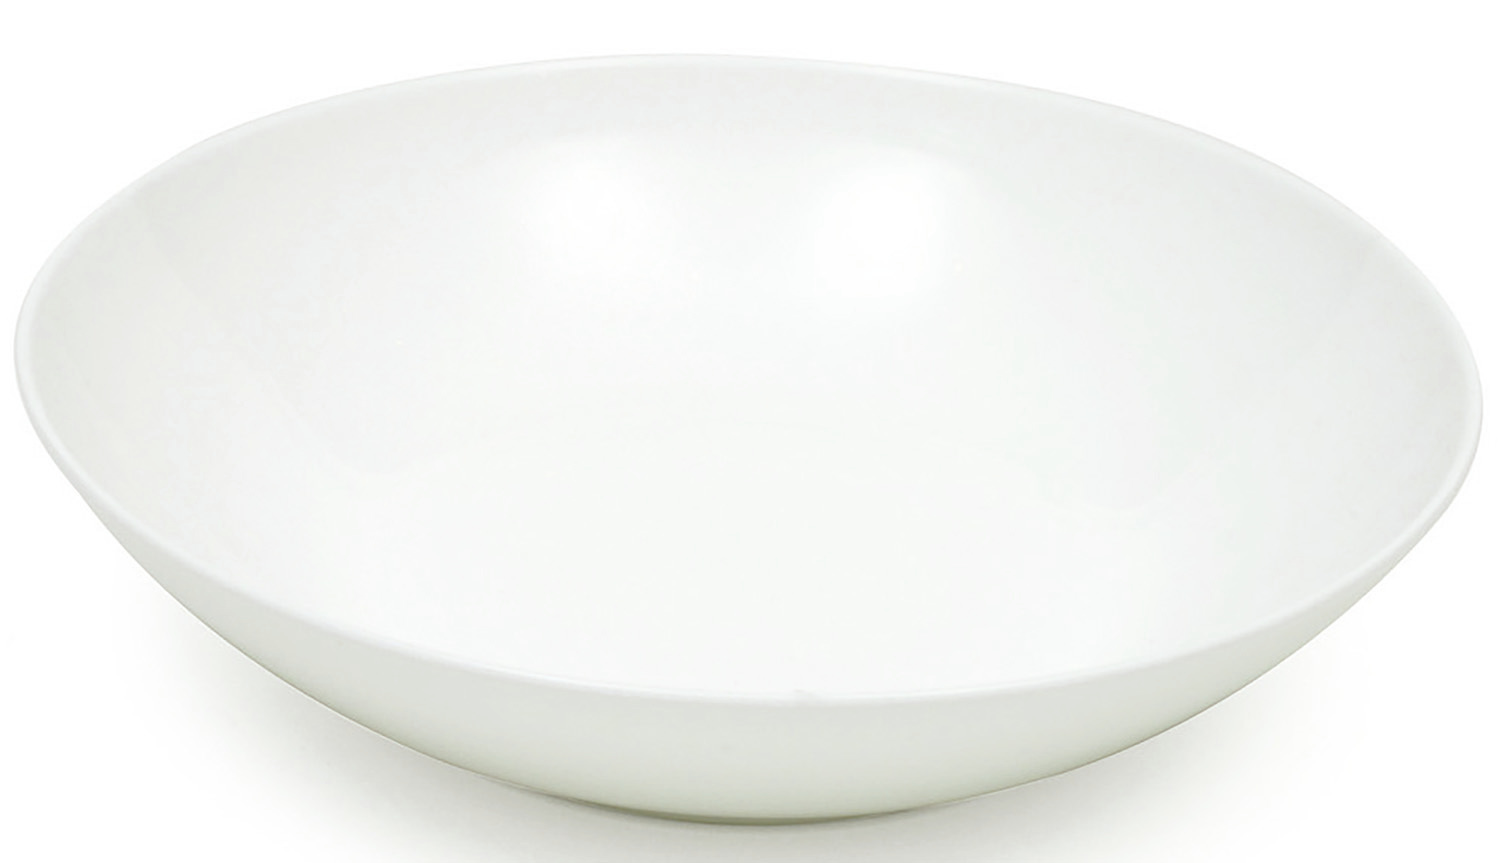 Maxwell & Williams Cashmere 20Cm Coupe Soup Bowl